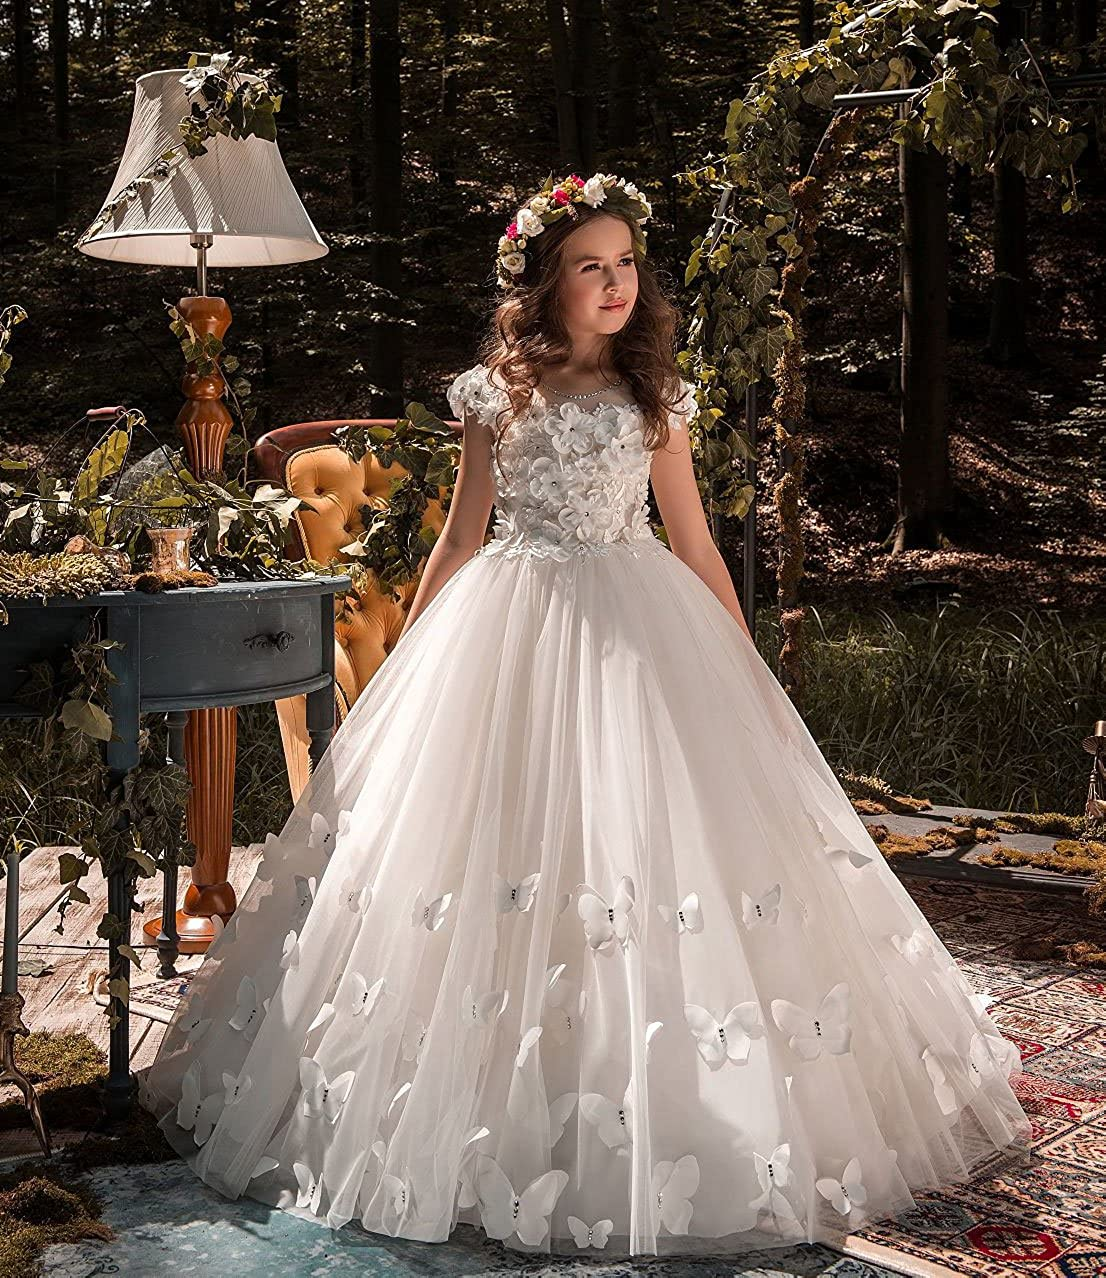 b50da6fc4 Amazon.com: Carat Crystal Beads Flower Girl Dresses White Vintage Kids Prom  Party Ball Gowns: Clothing